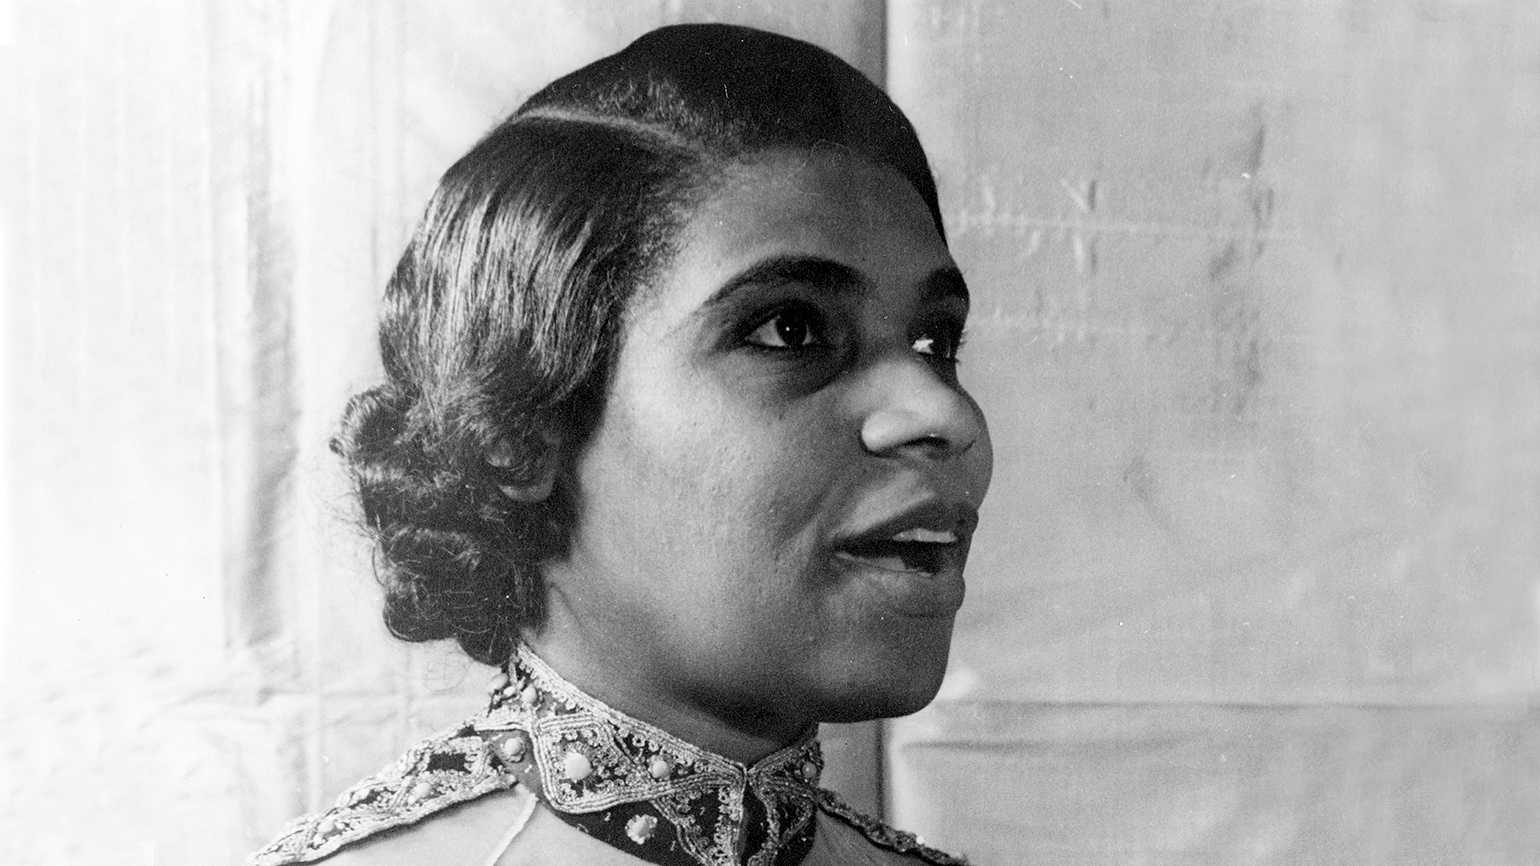 Presidential Medal of Freedom honoree Marian Anderson